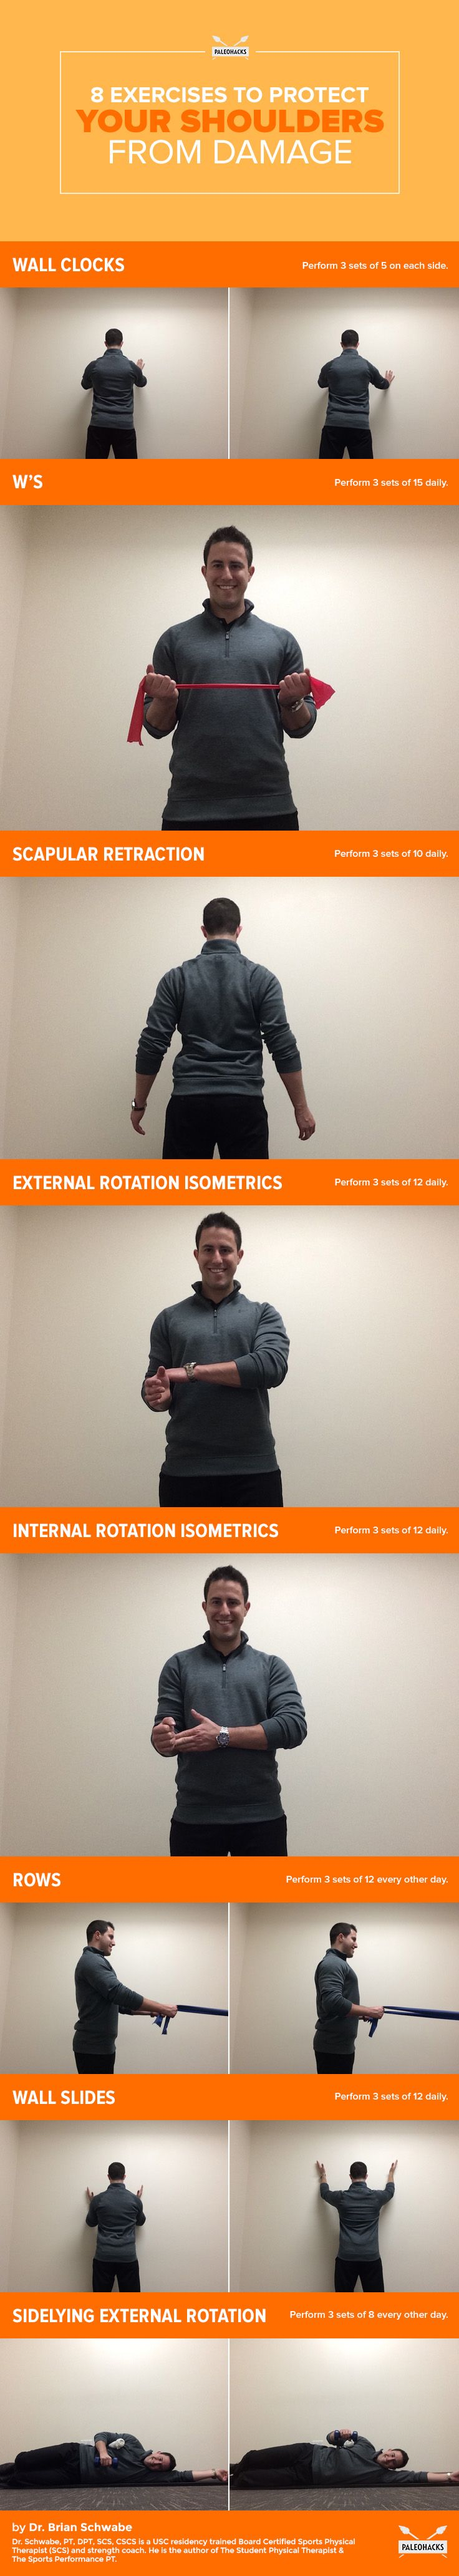 Eliminate pain, increase flexibility and prevent injuries! If you have been ignoring mobility here are eight exercises to protect your shoulders from damage! For the full mobility article visit us here: http://paleo.co/ShoulderDamage  #paleohacks #paleo